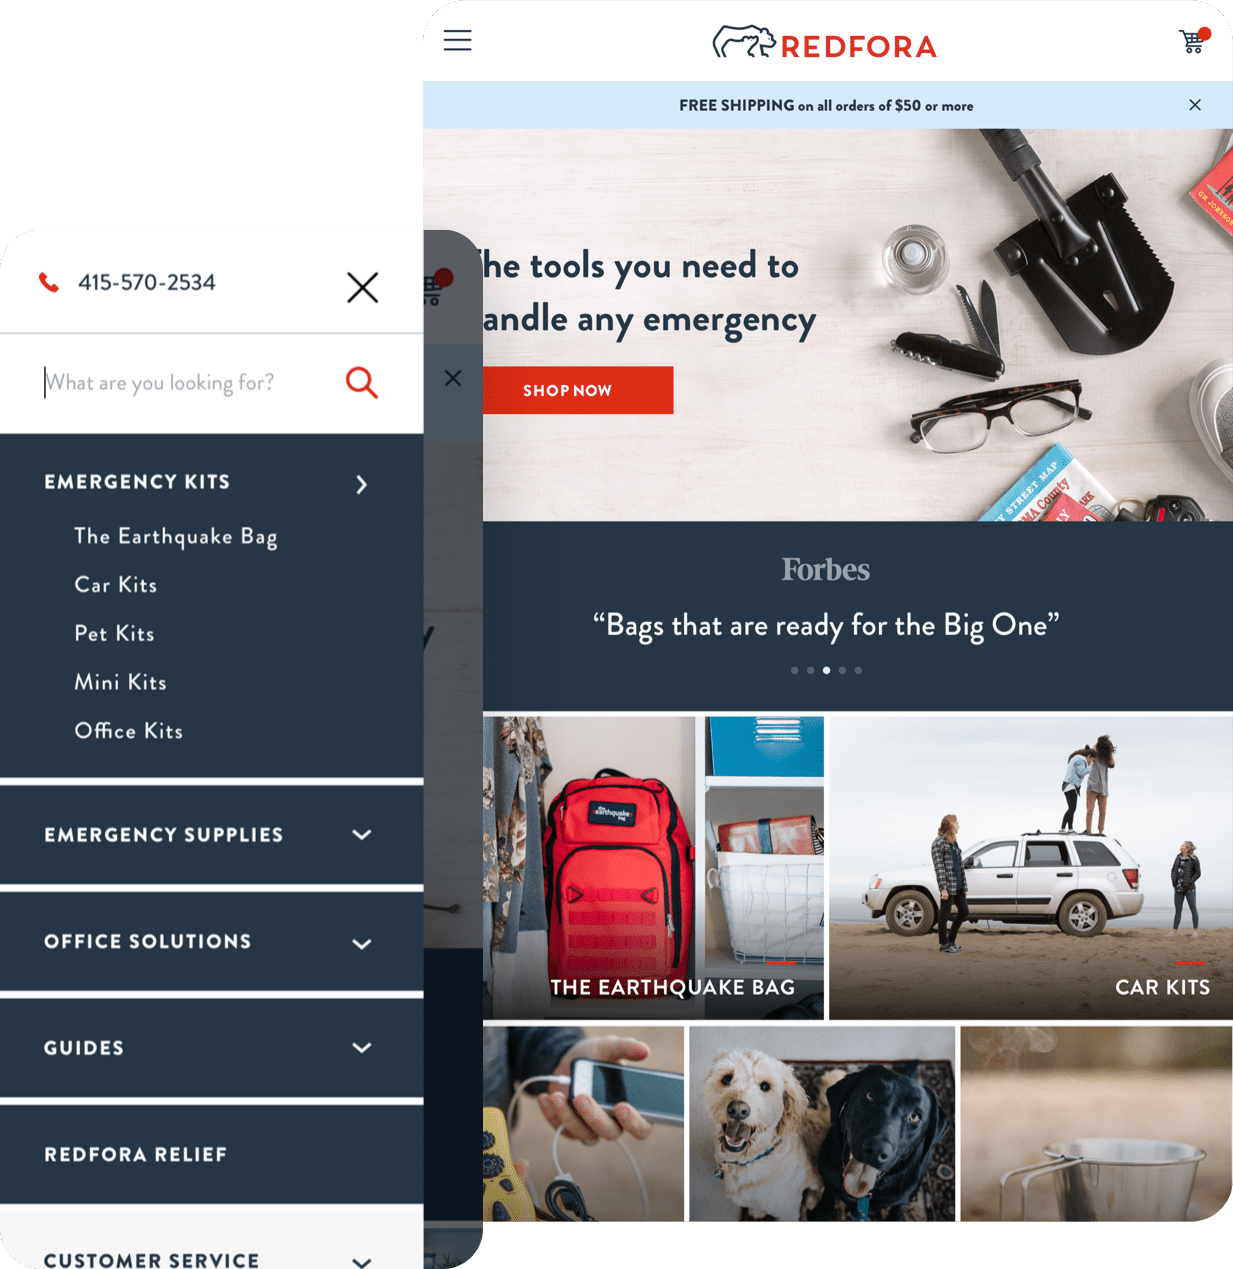 Redfora Mobile and Tablet